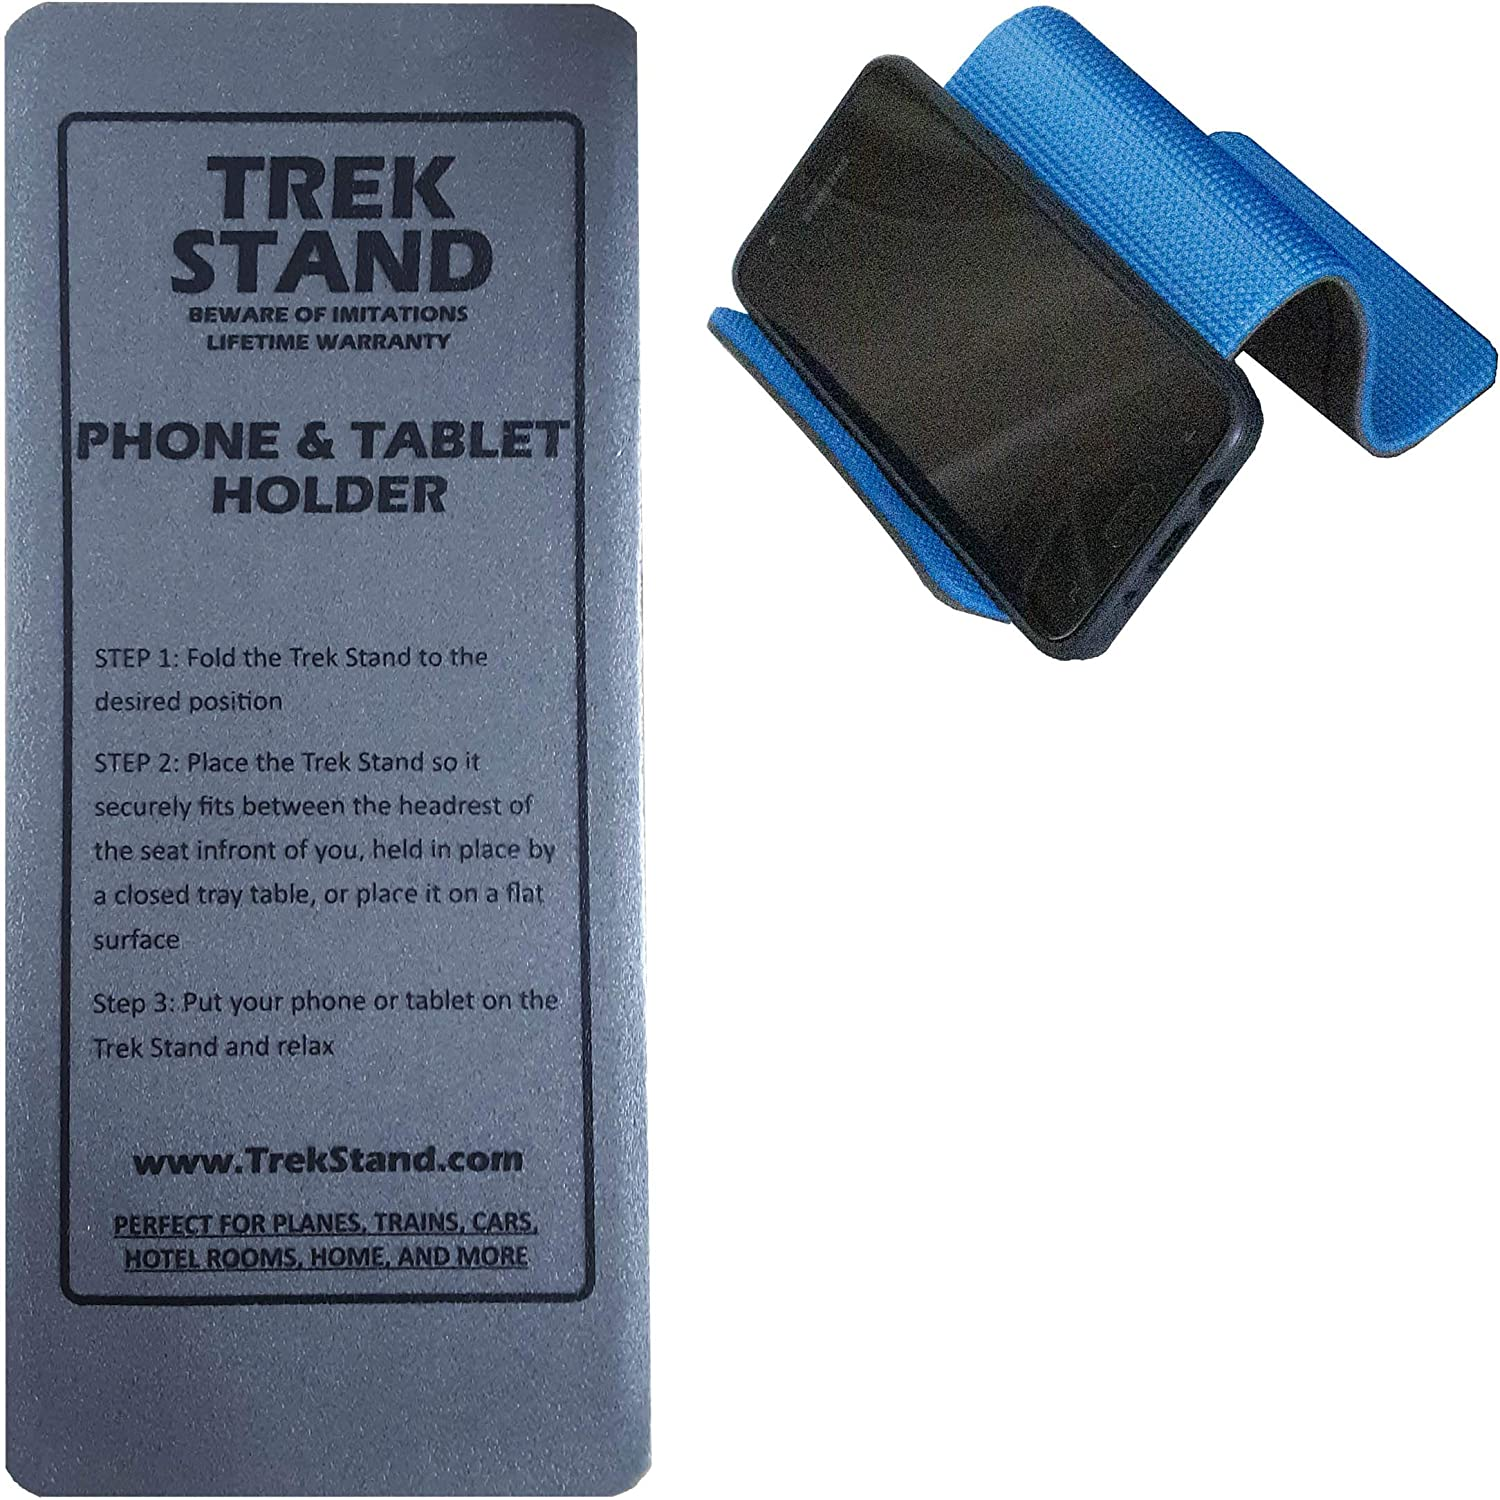 Trek Stand Hands Free Universal Cellphone Holder, Tablet Stand, and Book Holder. for Home, Desk, Bed, Kitchen, Video Chatting, Studying, and Cooking.